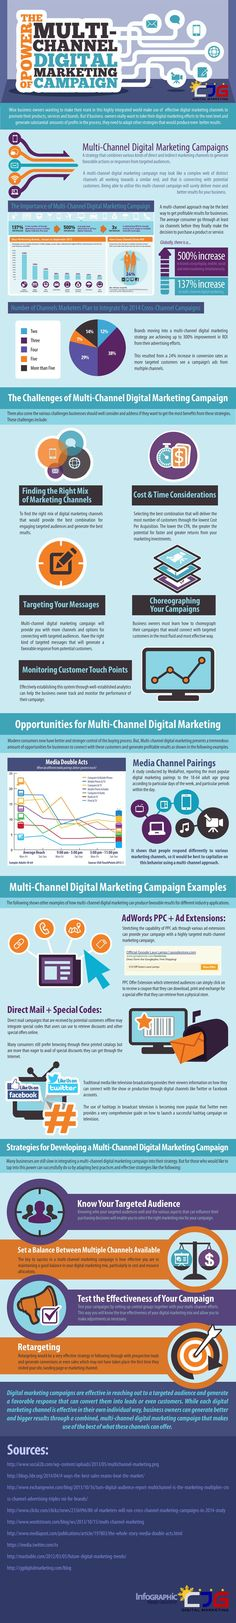 The Power of Multi-Channel Digital Marketing Campaign [Infographic]